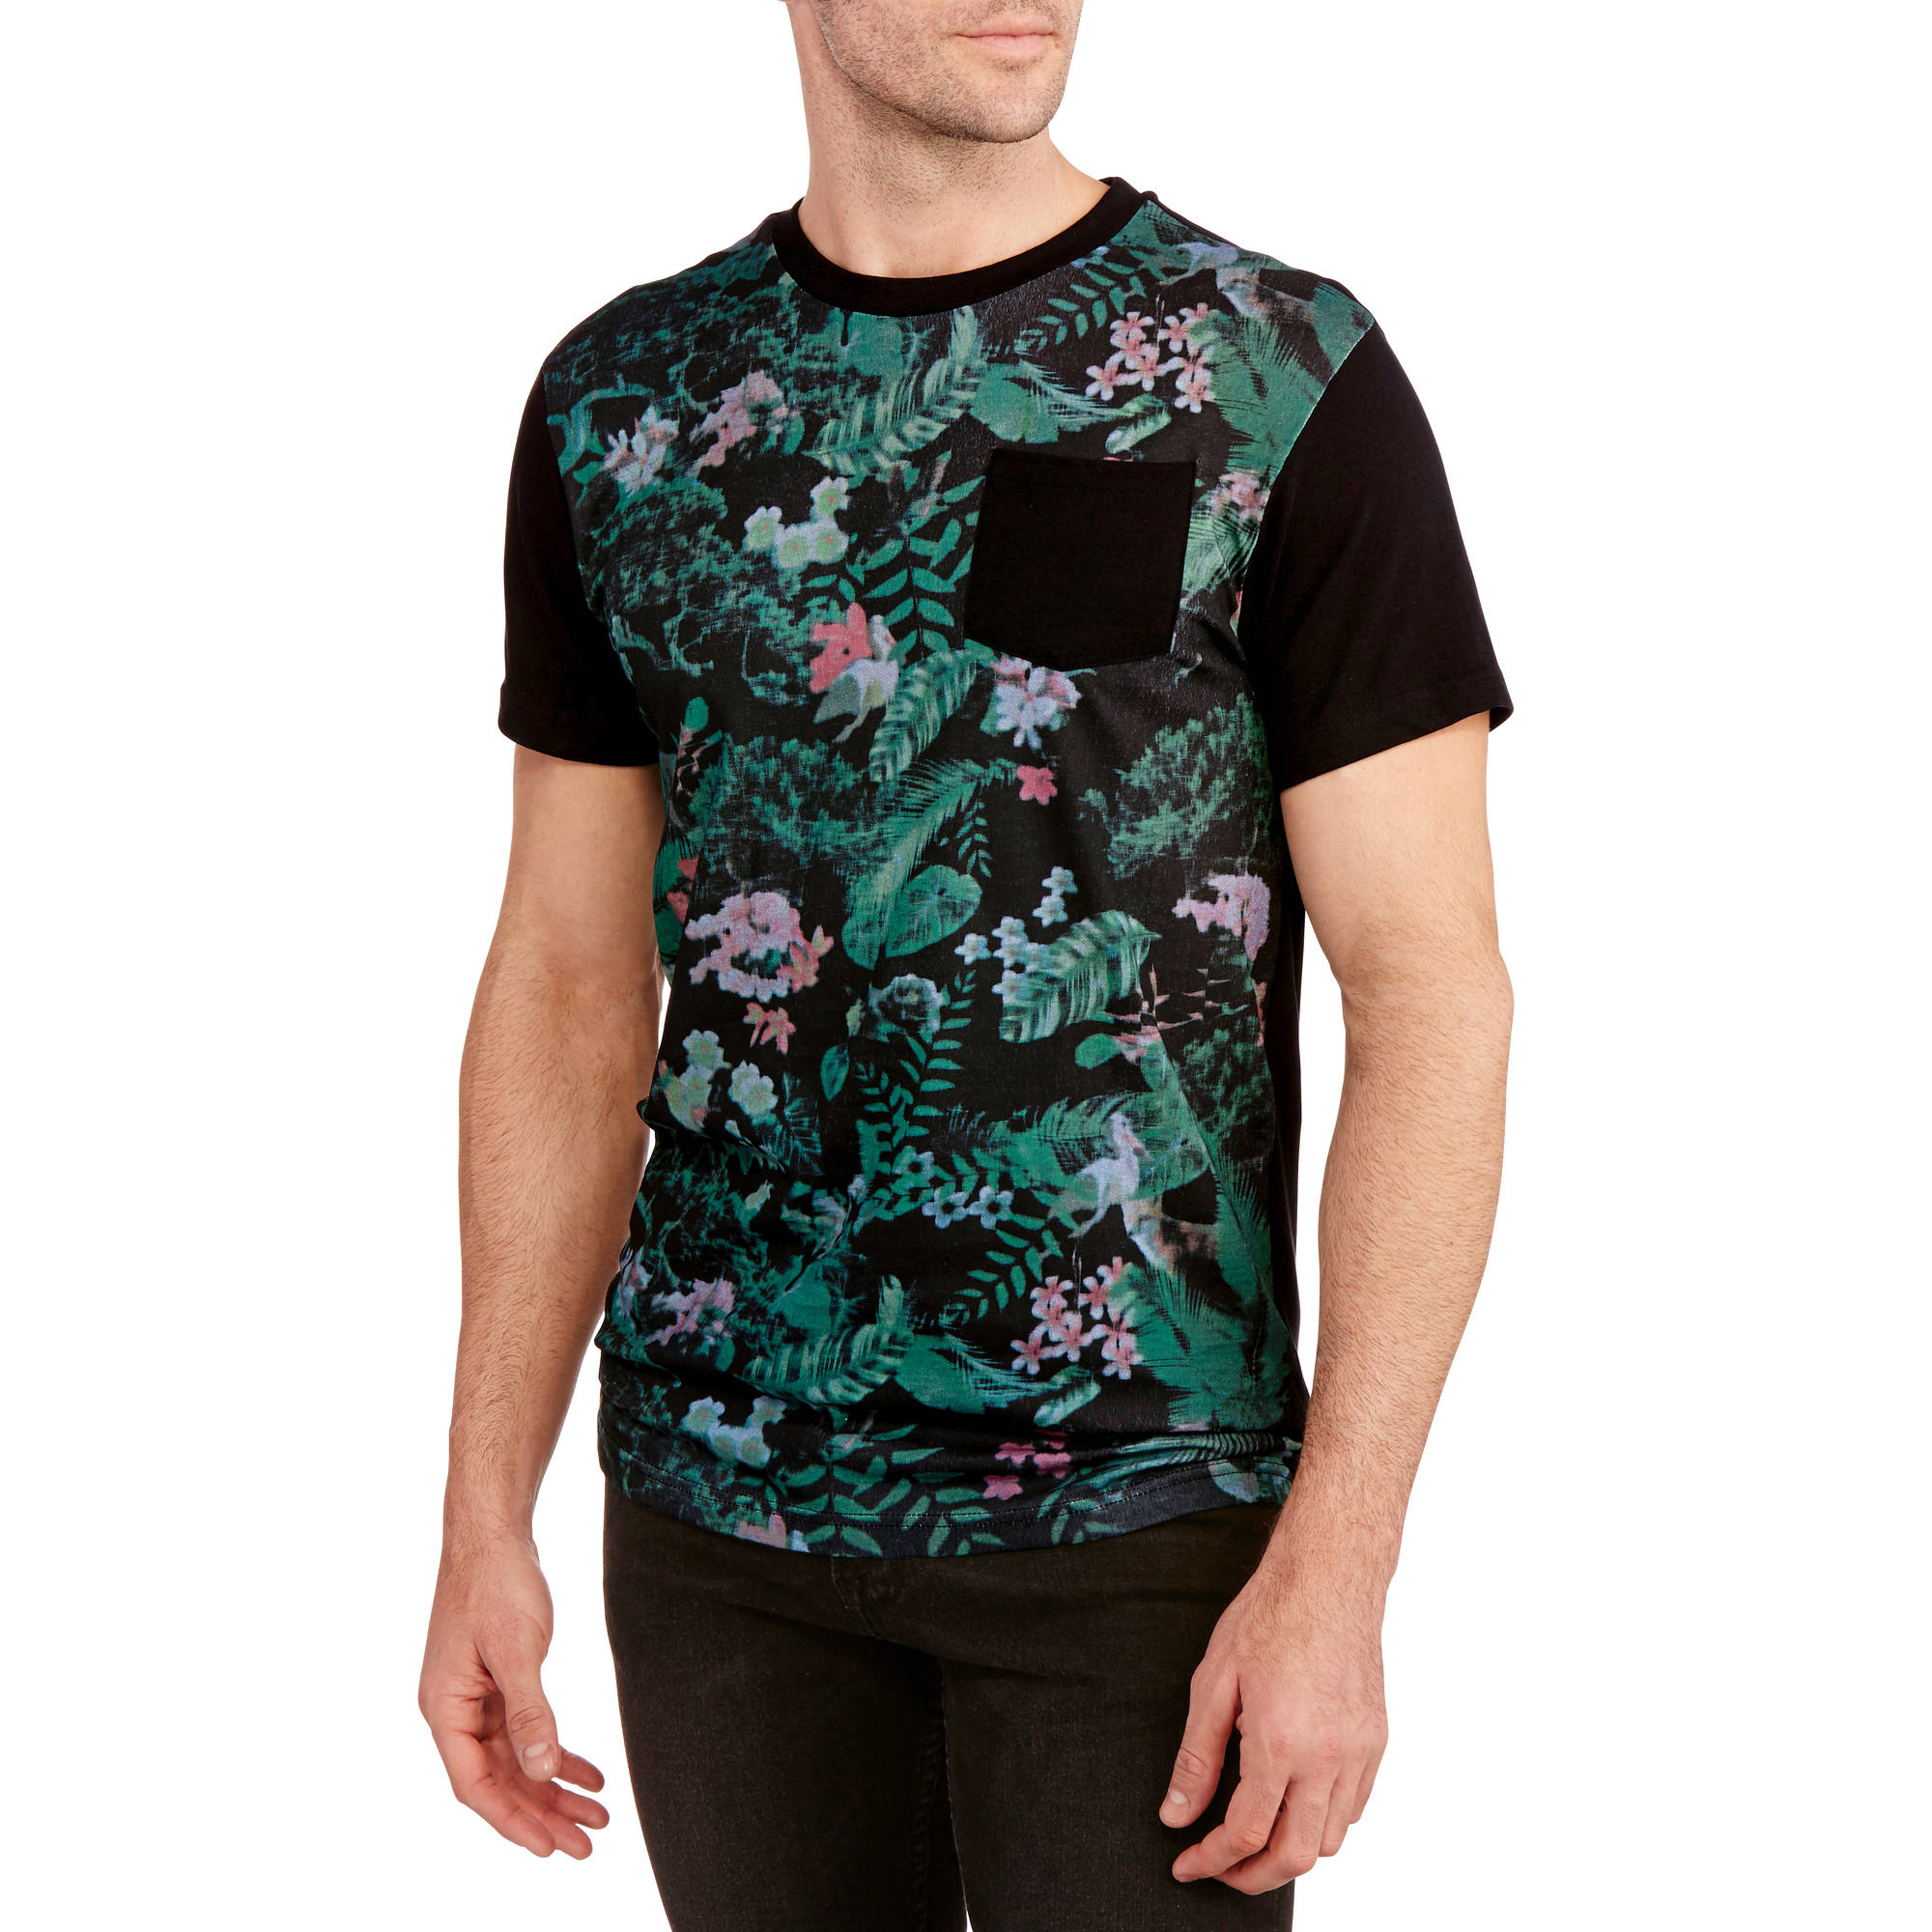 Jungle Printed Men's Graphic Tee